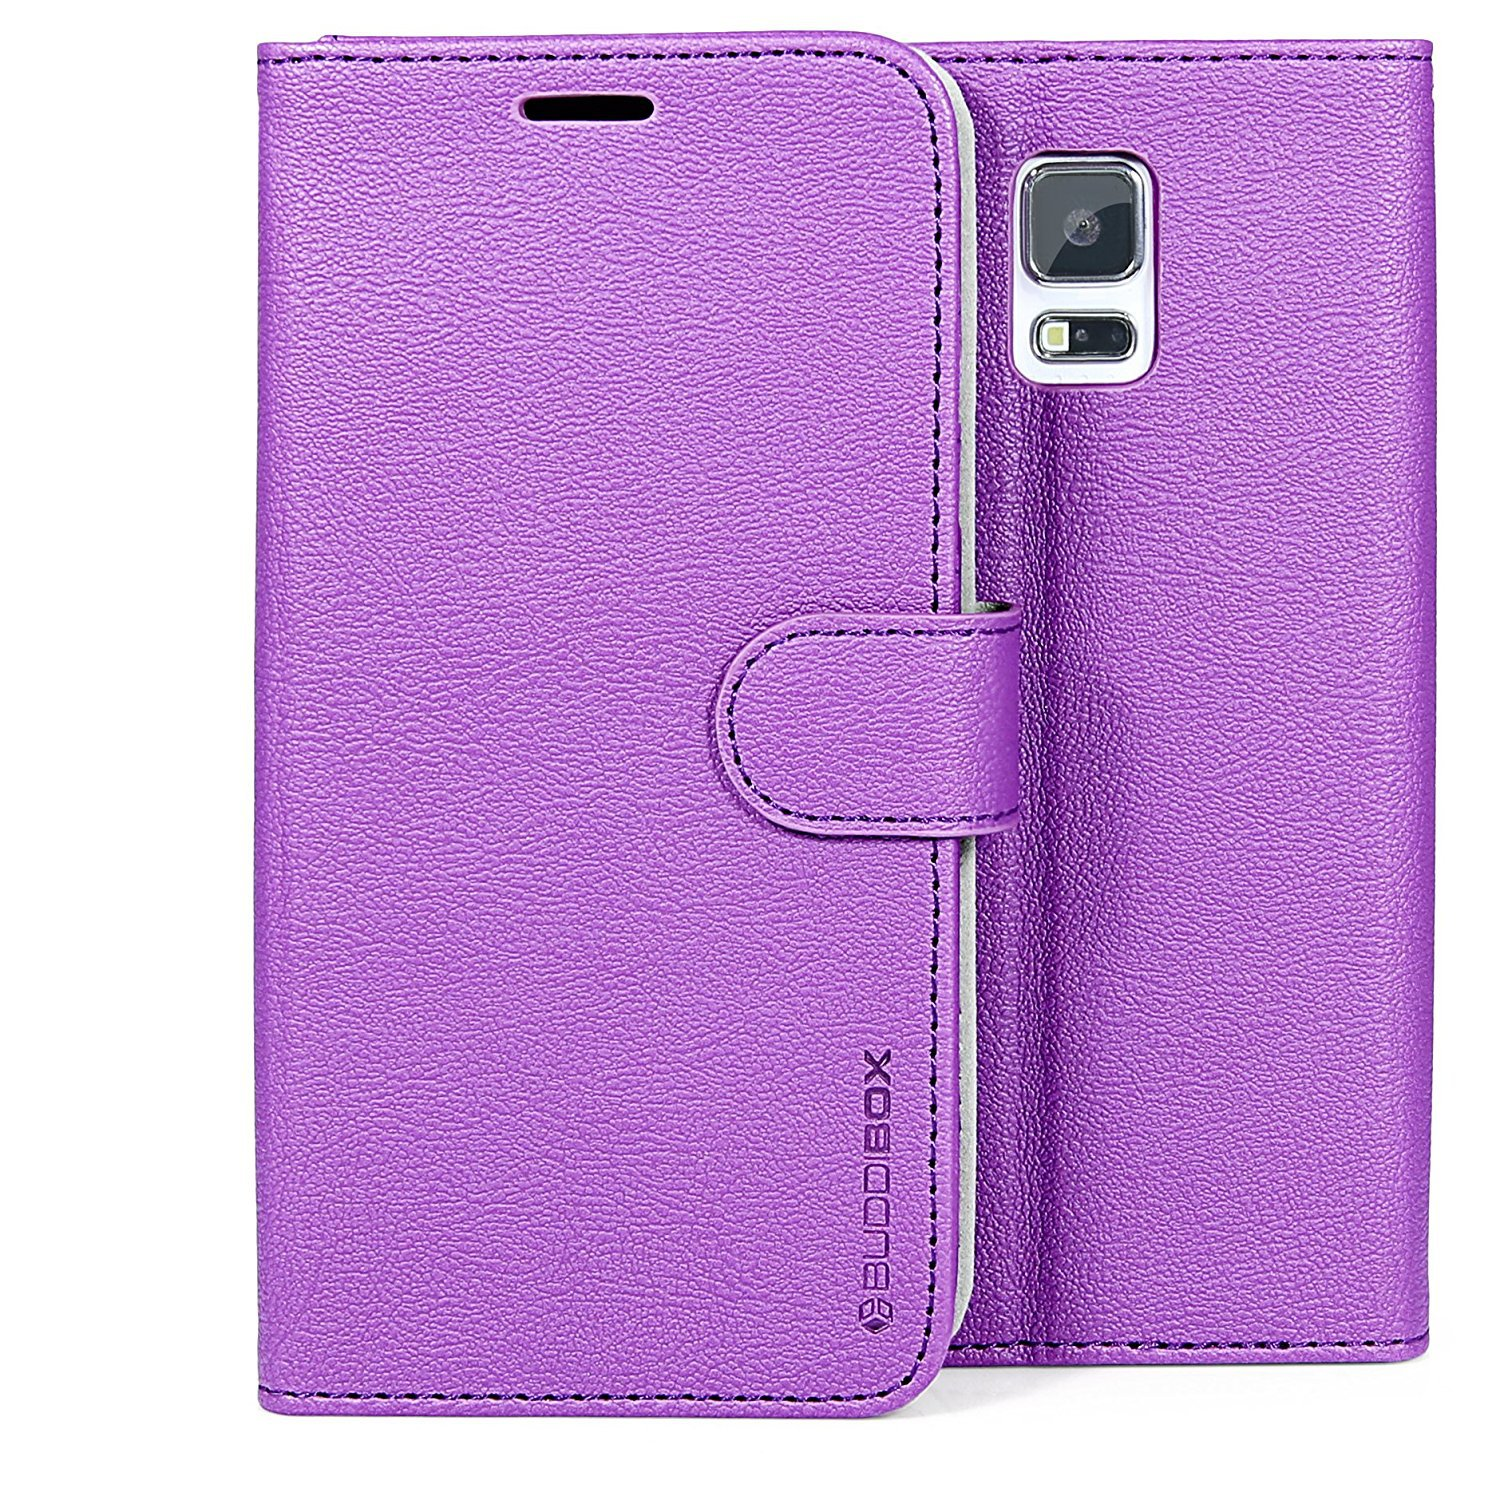 BUDDIBOX for Samsung Galaxy S5 Premium Leather Case with HD Screen Protector (Purple)